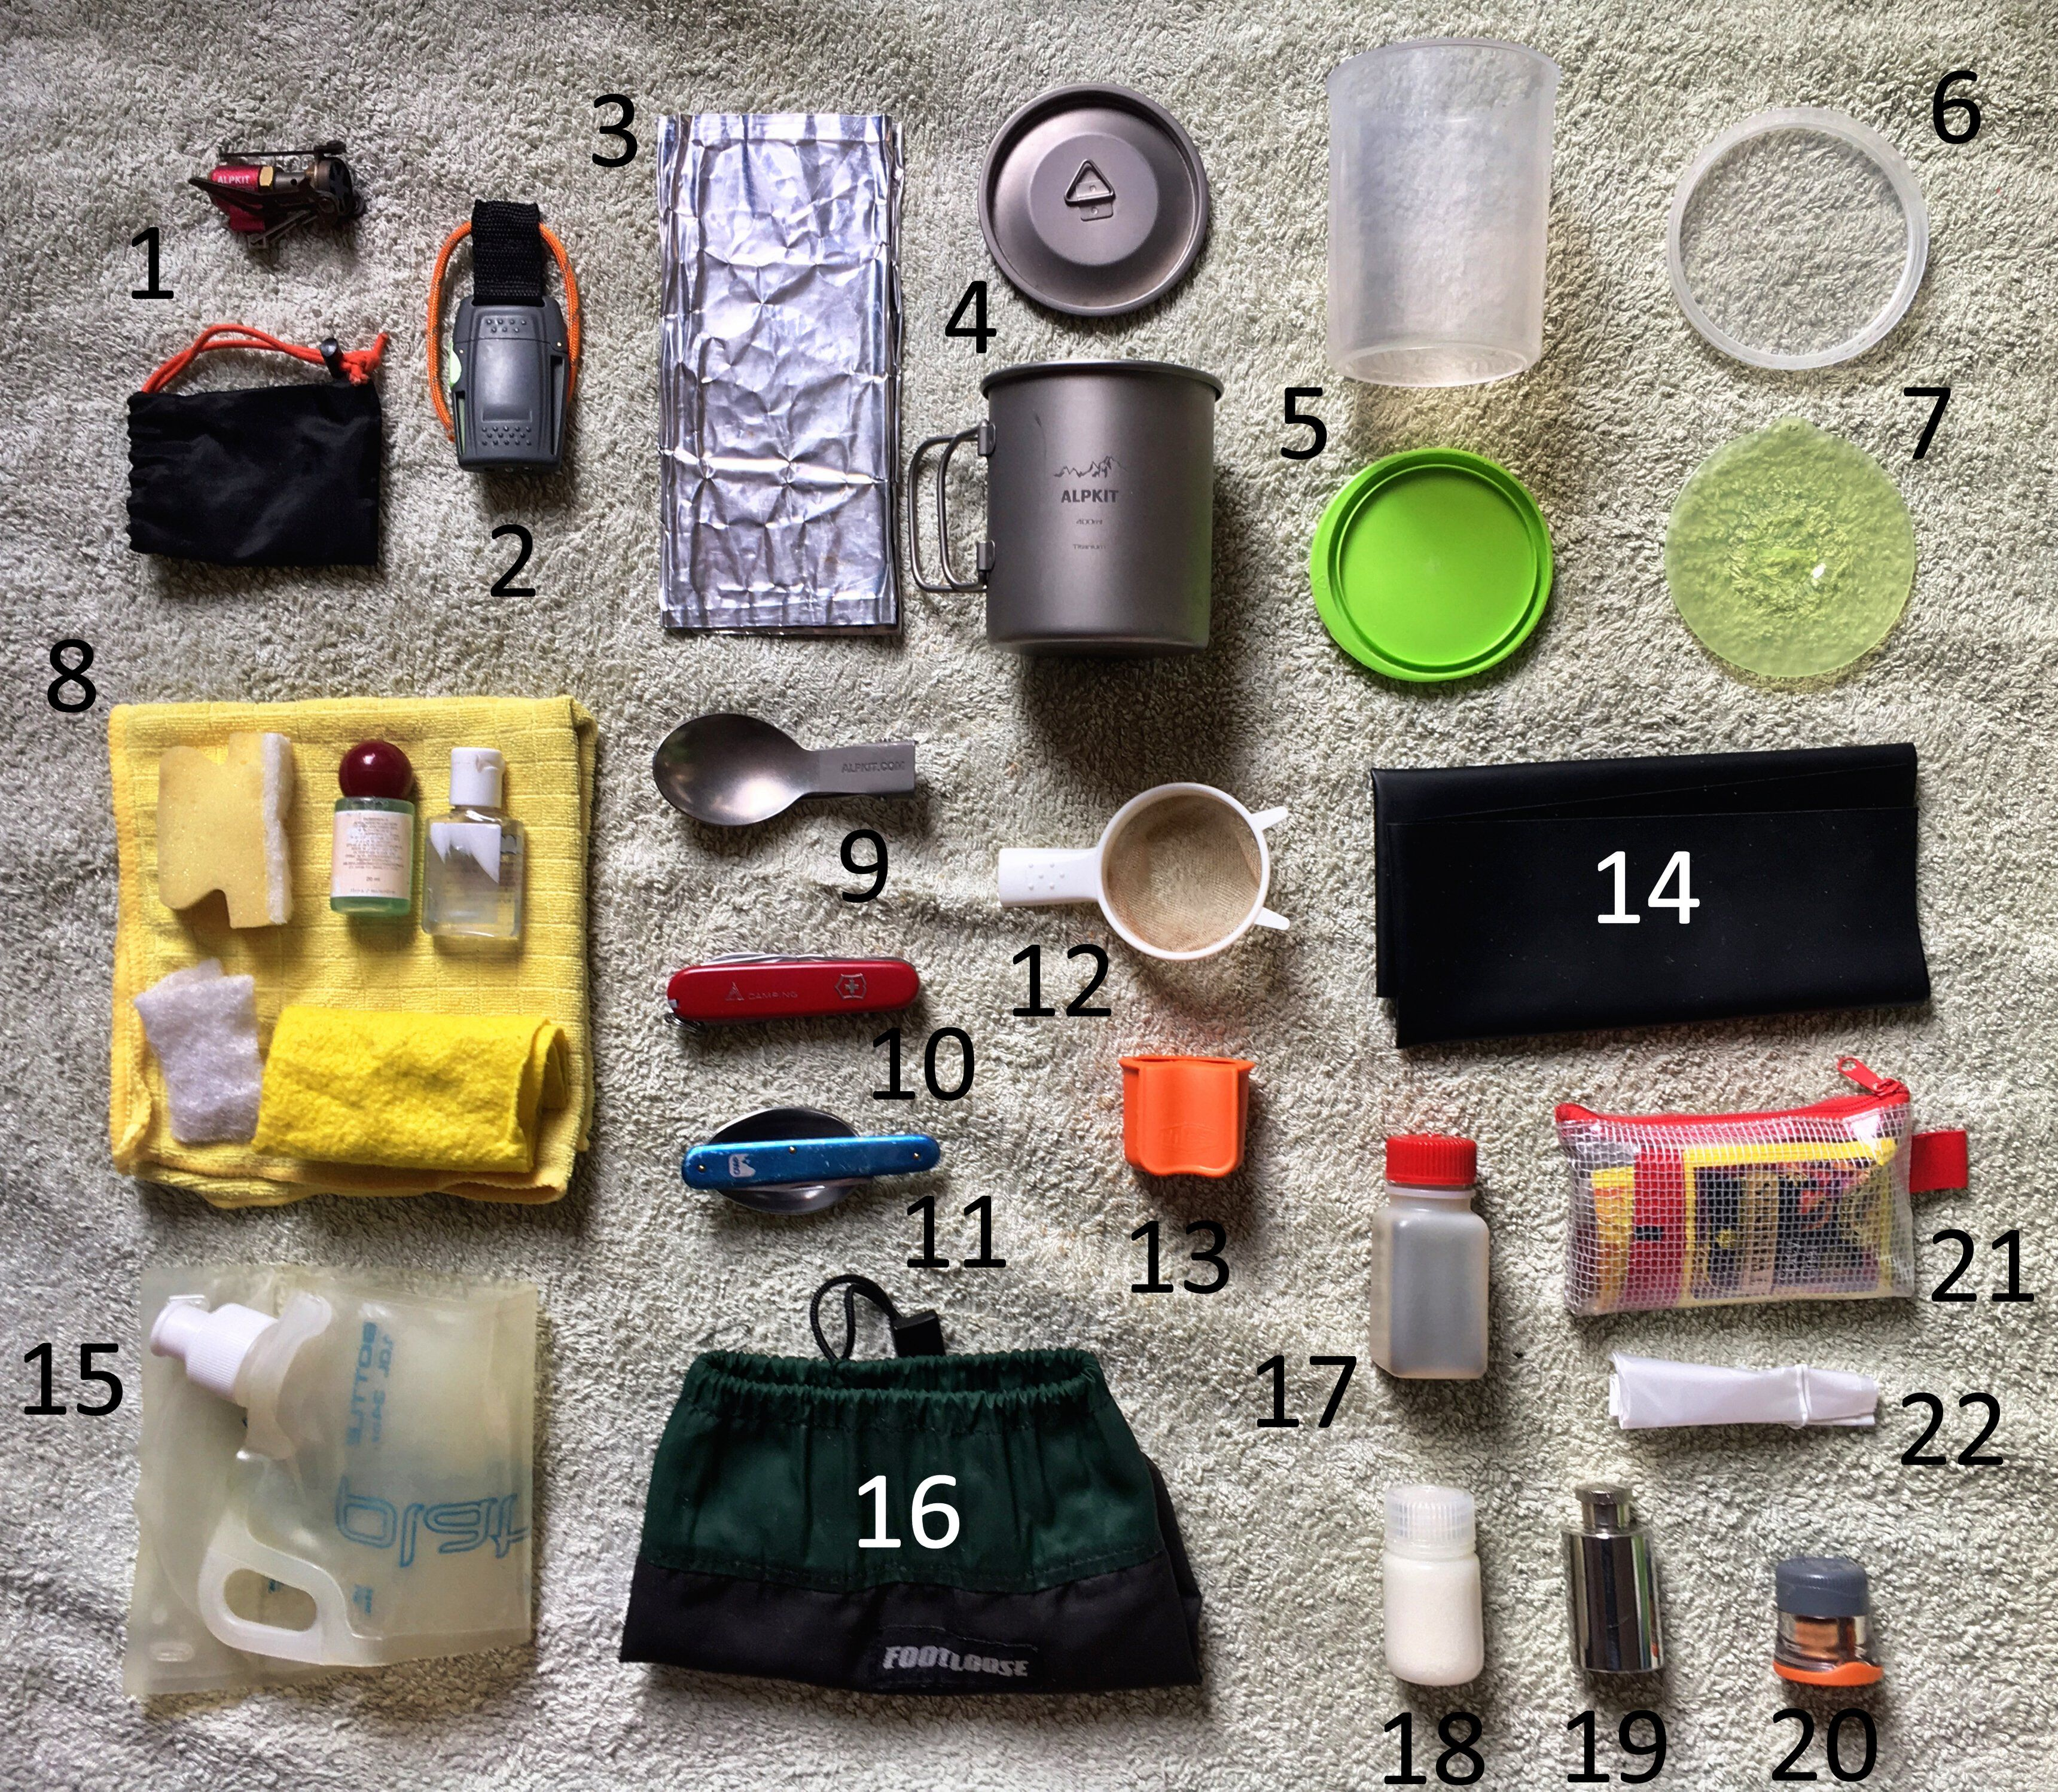 Backpacking cooking gear lightweight and compact is